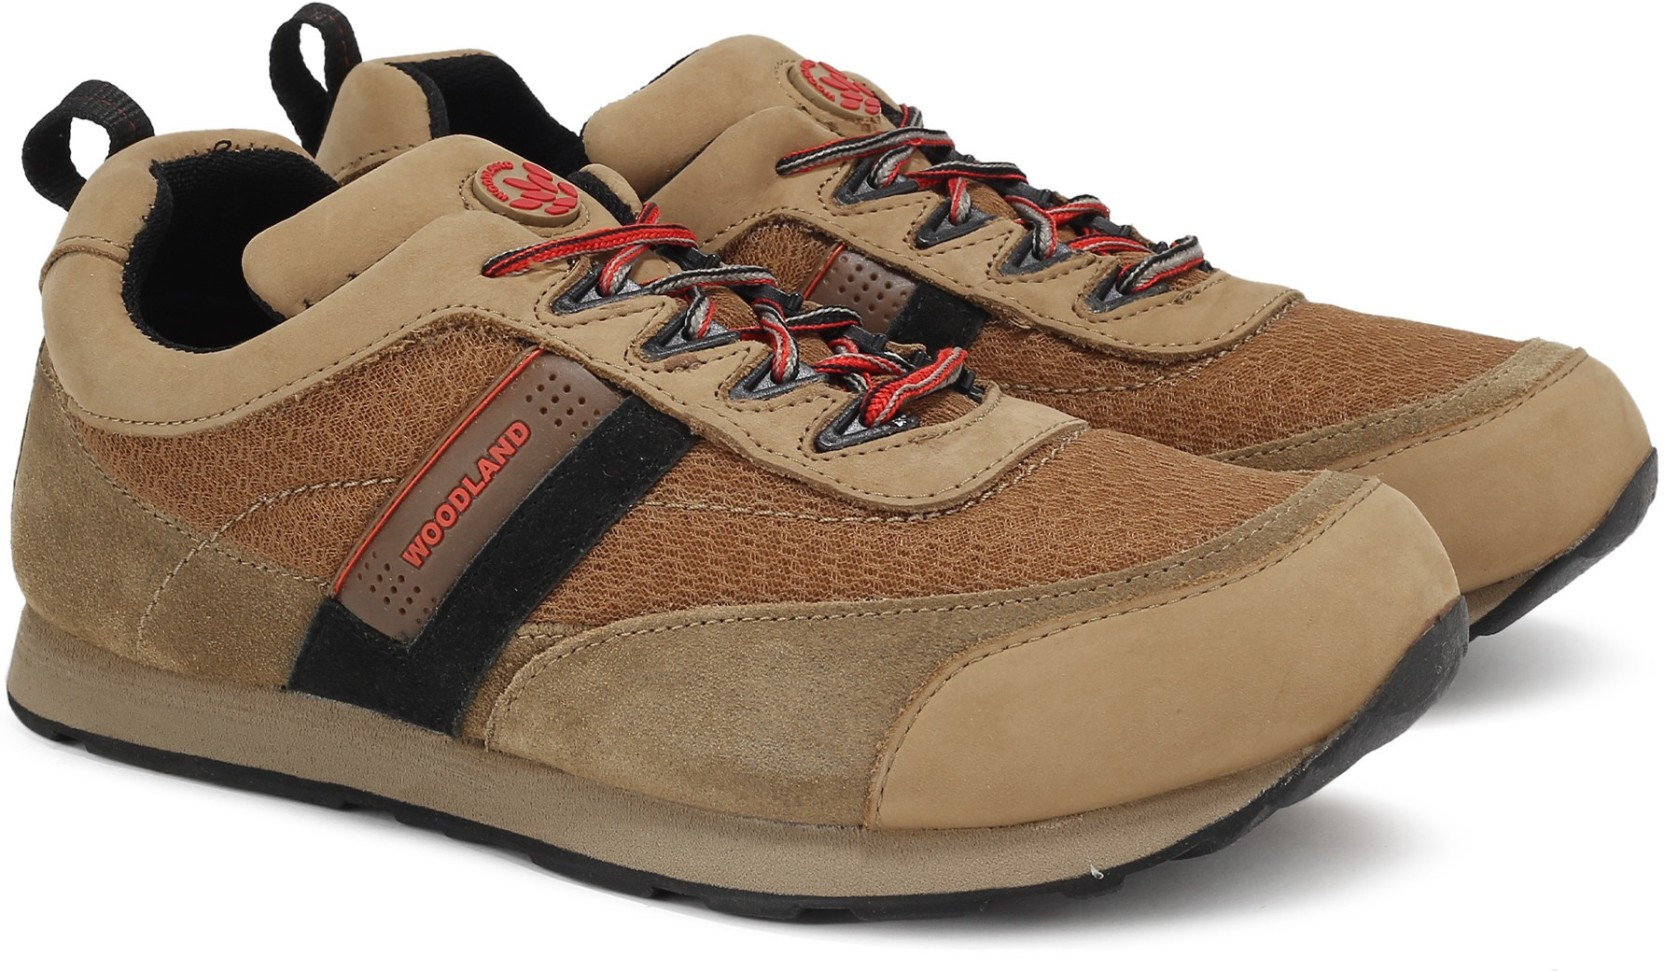 Woodland Leather Sneakers - Buy CAMEL Color Woodland ...